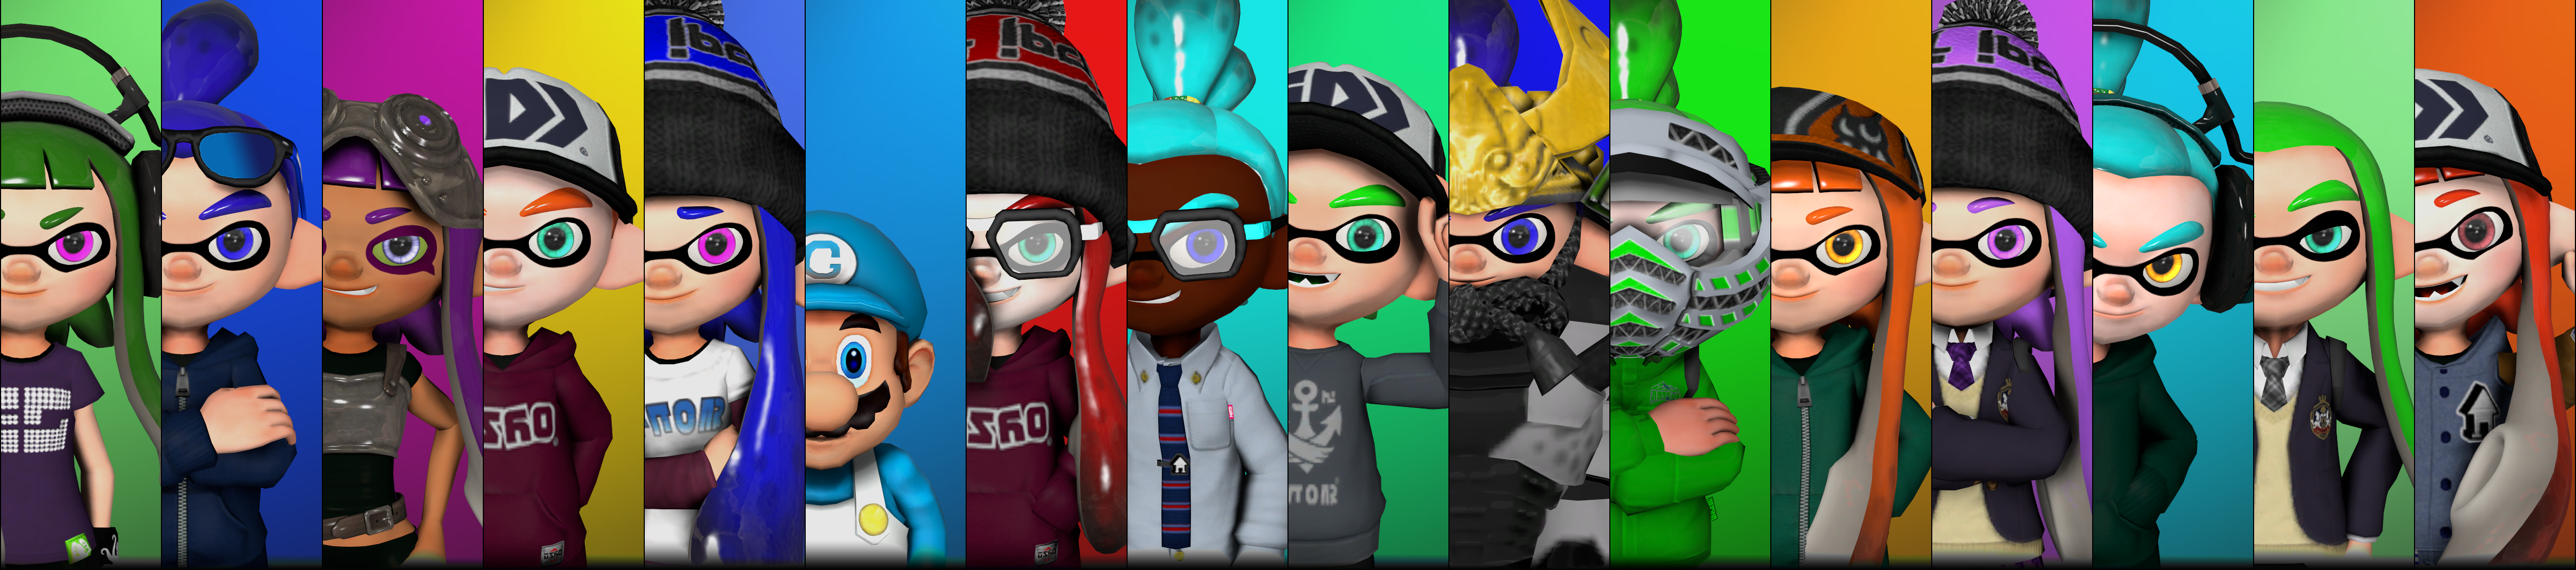 Faces Of Splatoon By Poool157 On Deviantart